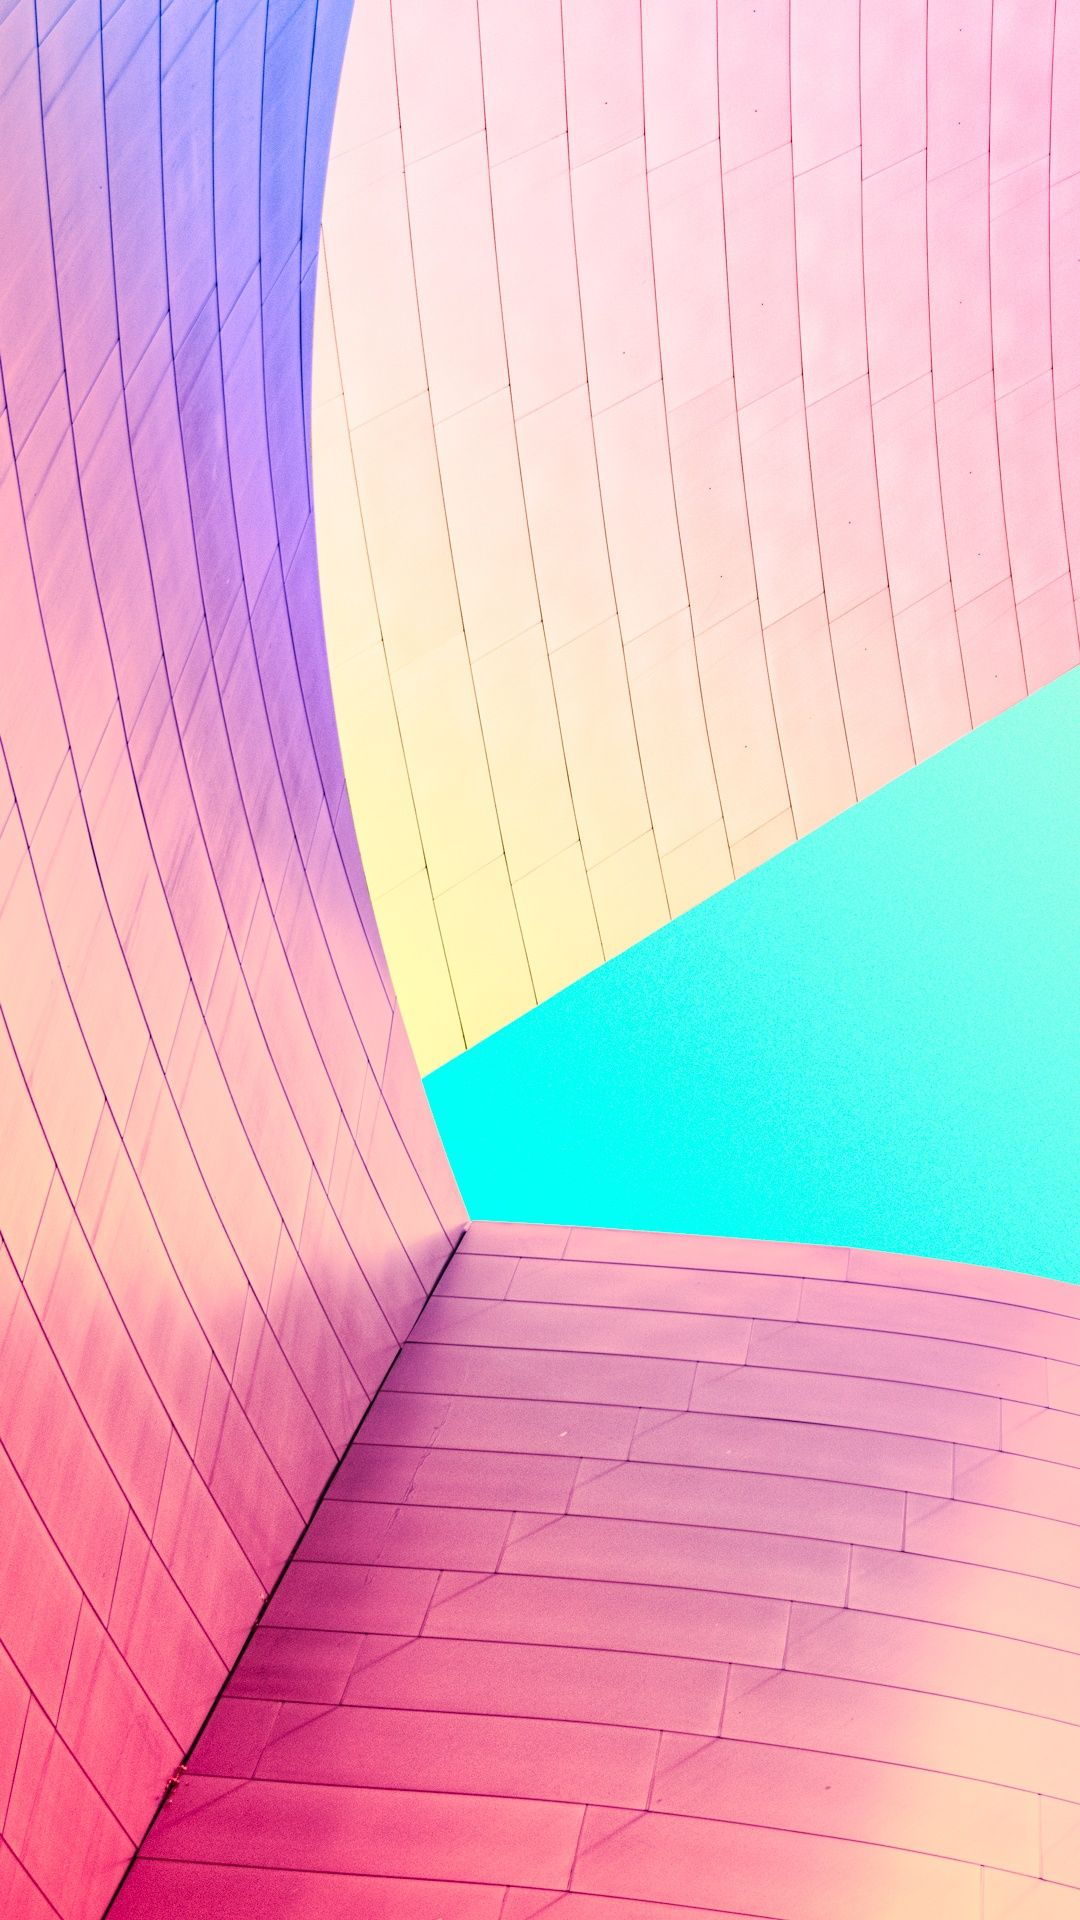 modern building colorful walls iphone 6 plus hd wallpaper